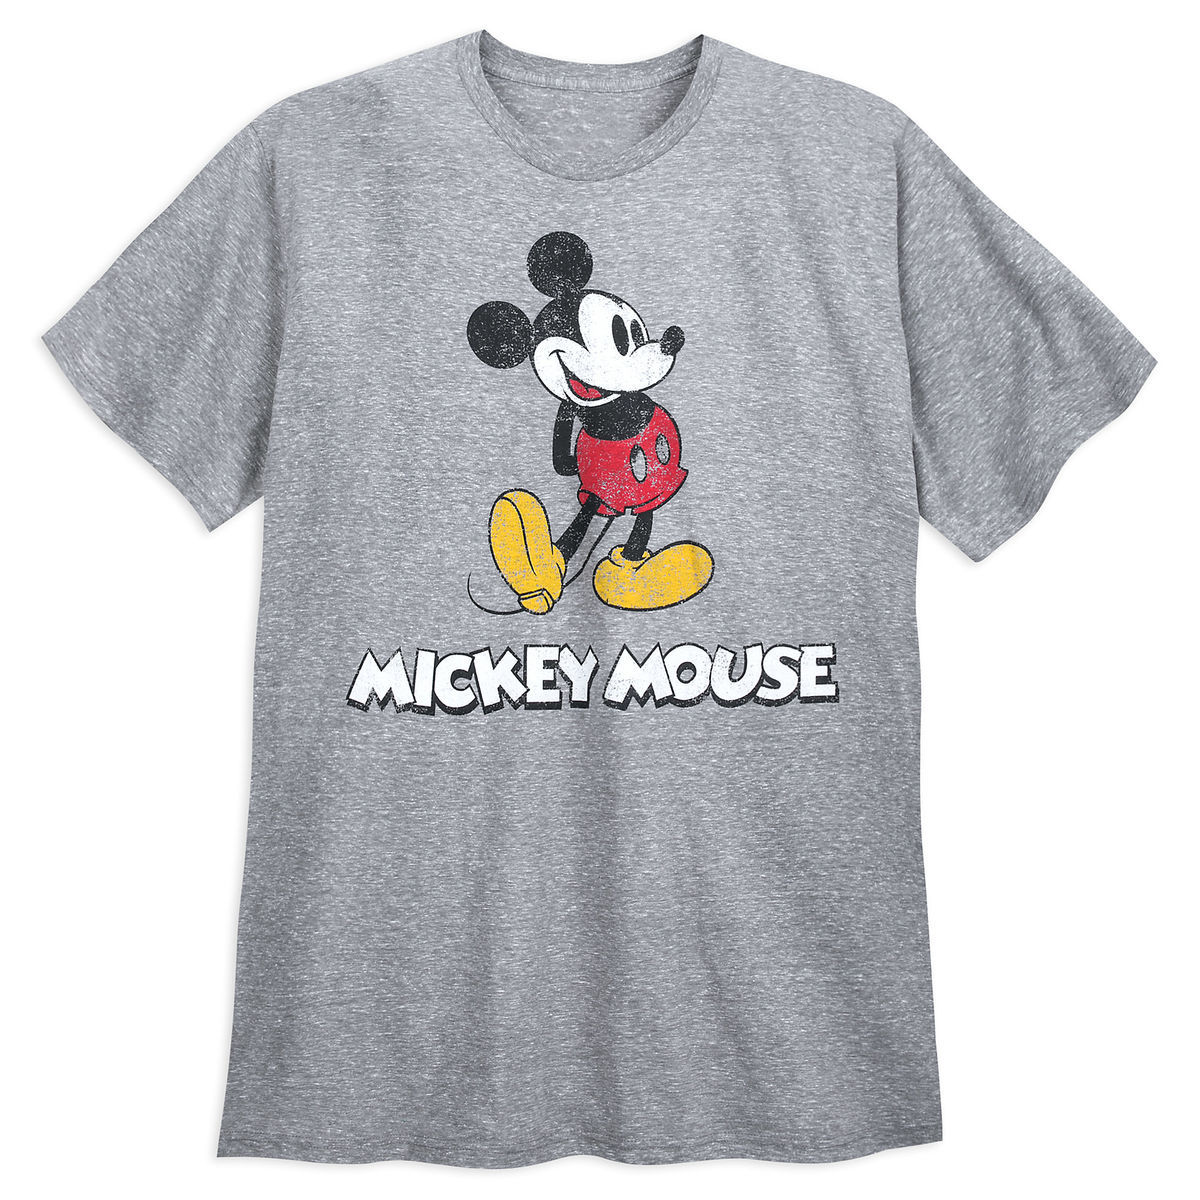 Product Image of Mickey Mouse Classic T-Shirt for Men - Gray   1 e1ba234c60a